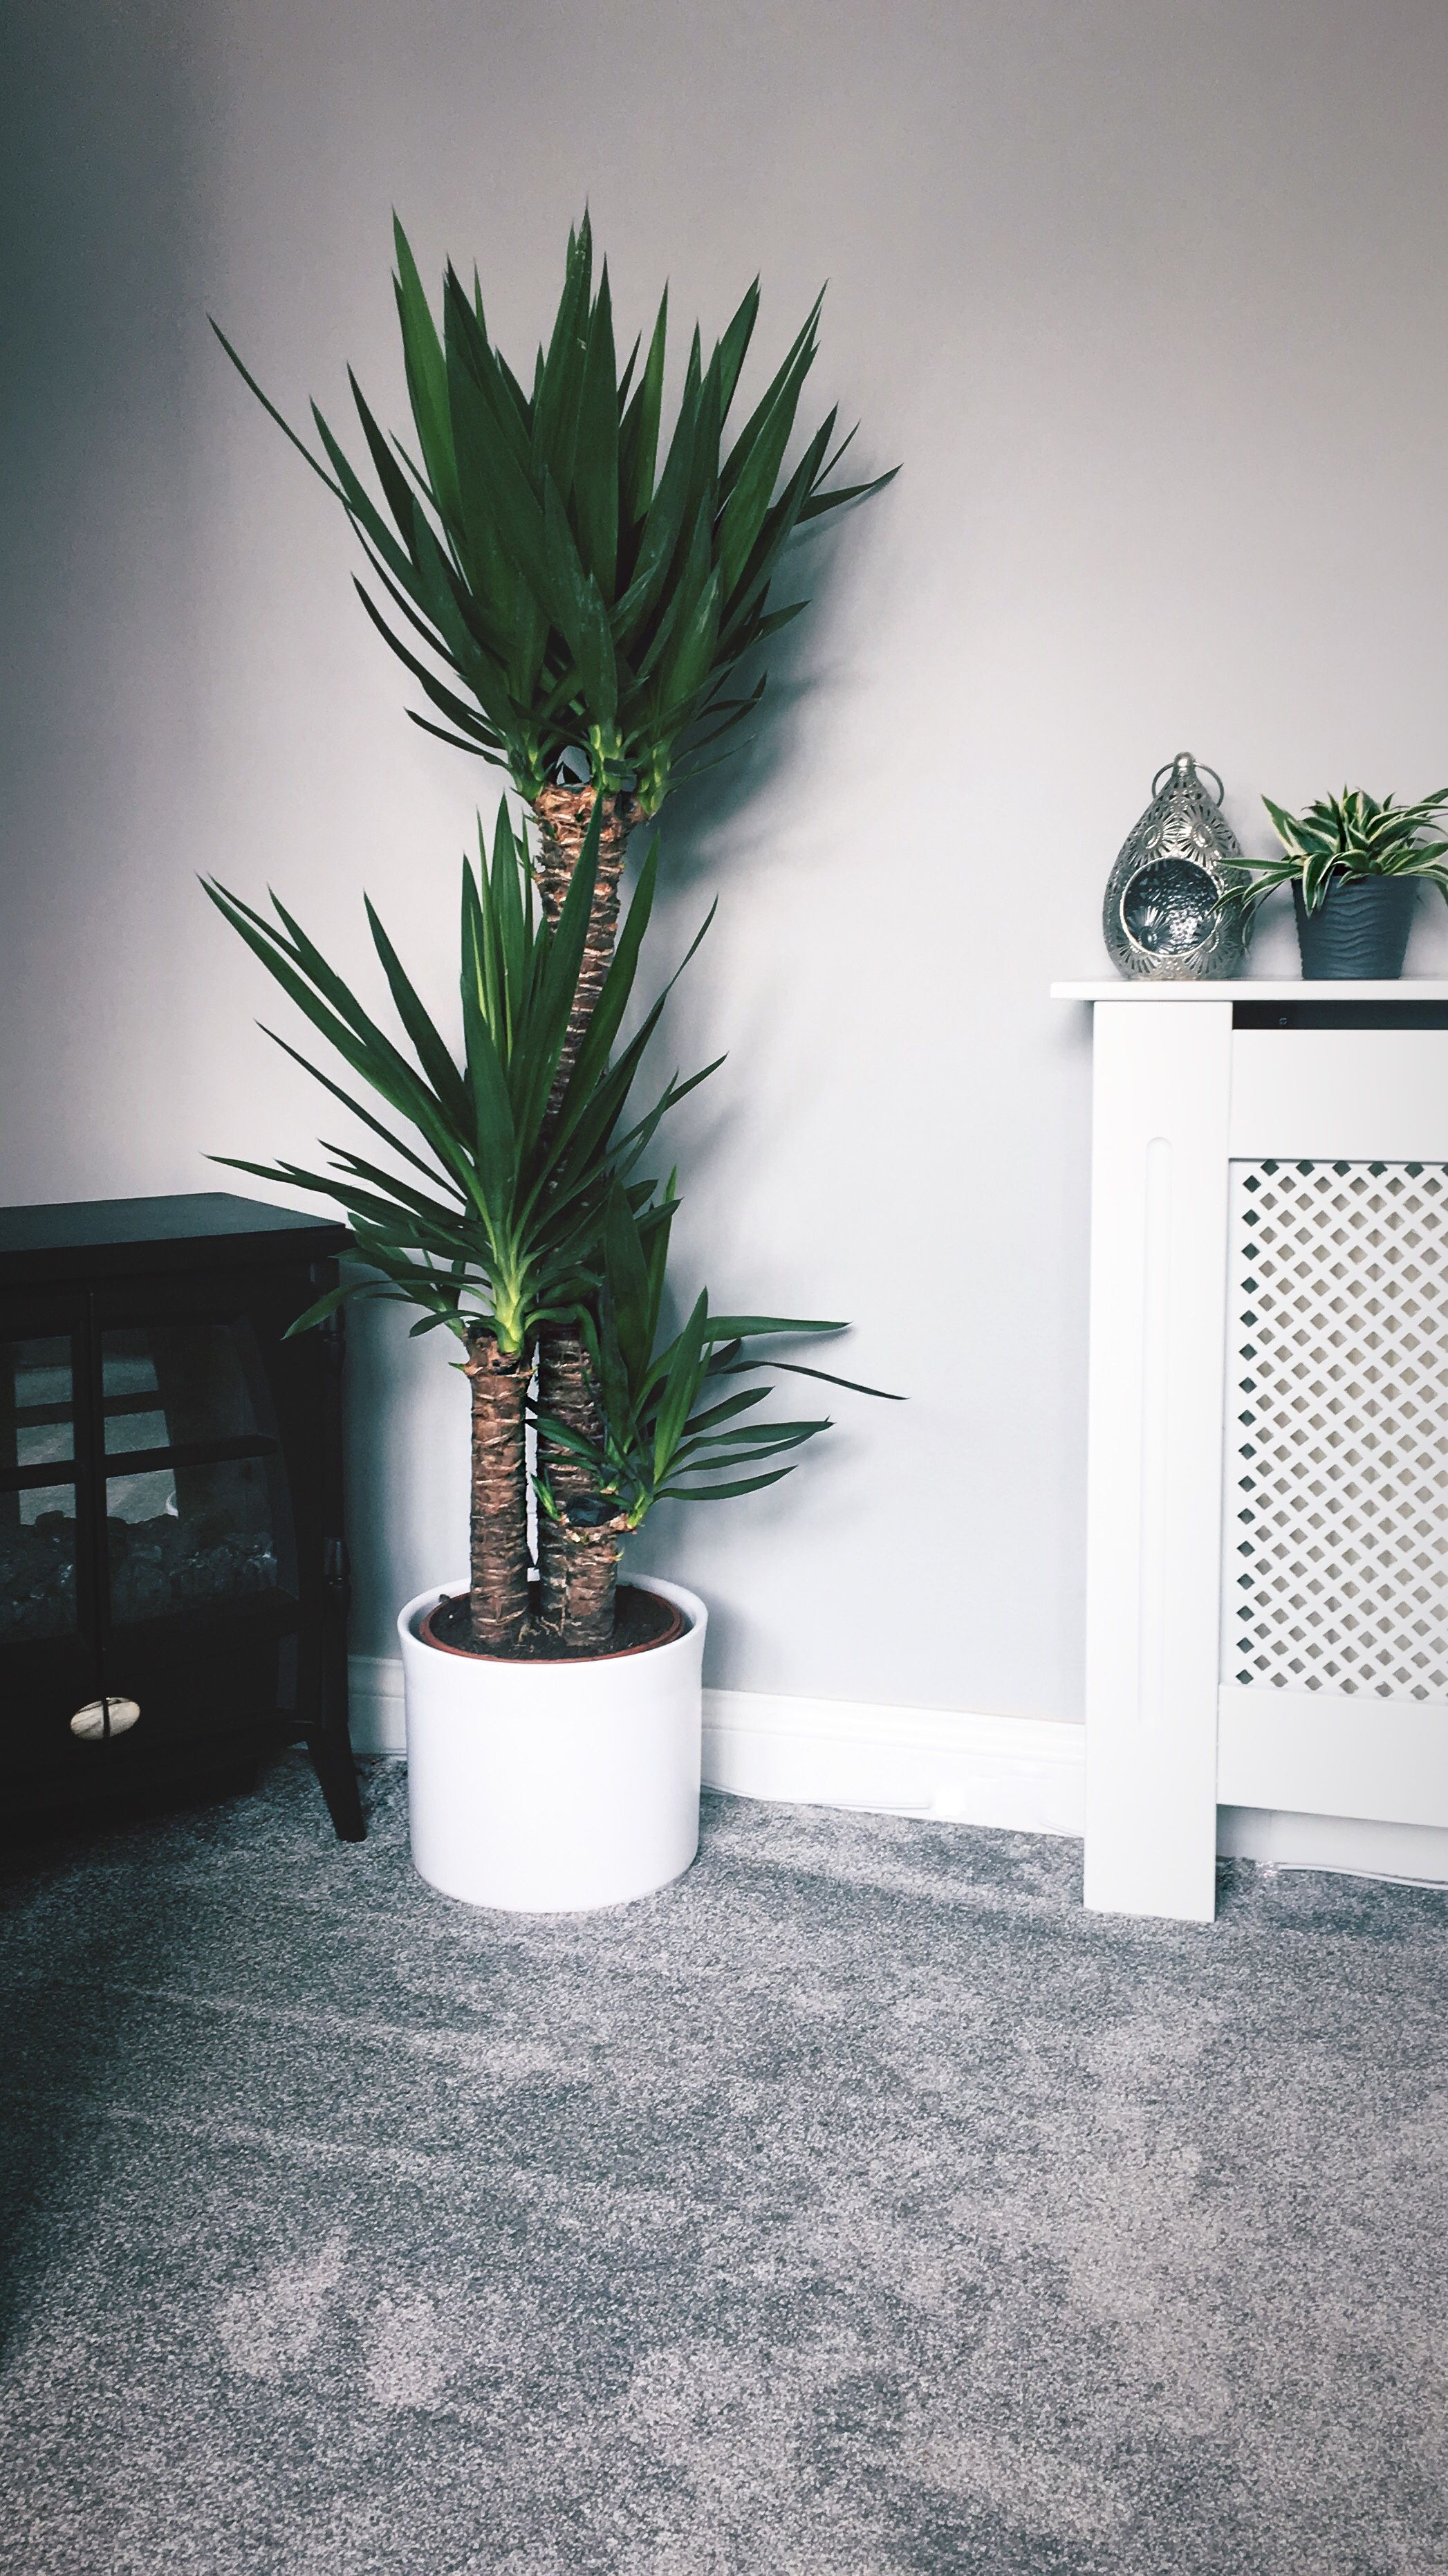 Home Tropical Plant Yucca Tree Indoor Plant Chic Style Bohemian Yucca Tree Indoor Plants Tropical Plants